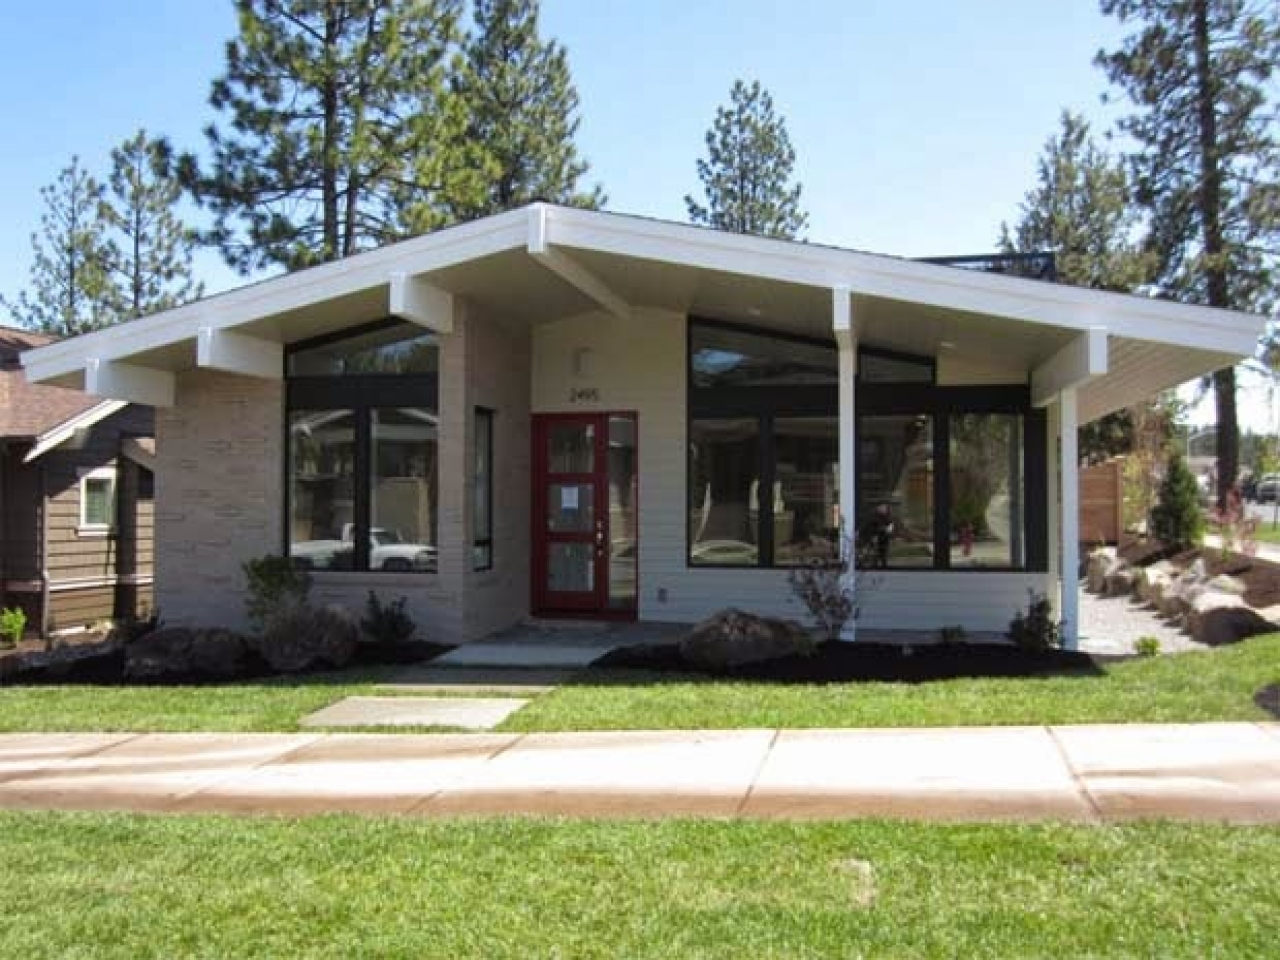 Mid century modern small house plans mid century modern for Small mid century modern house plans